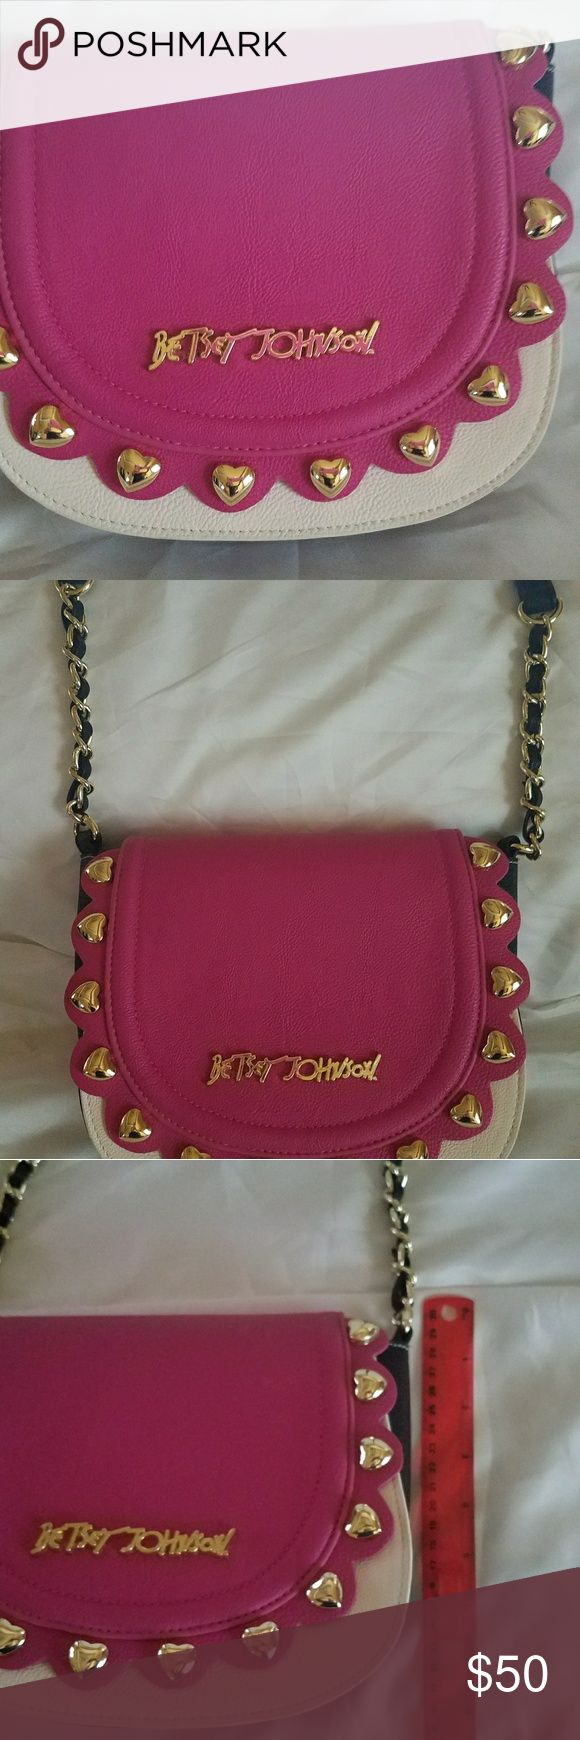 Betsey Johnson crossover purse Adorable Betsey Johnson Crossover Purse Betsey Johnson Bags Crossbody Bags